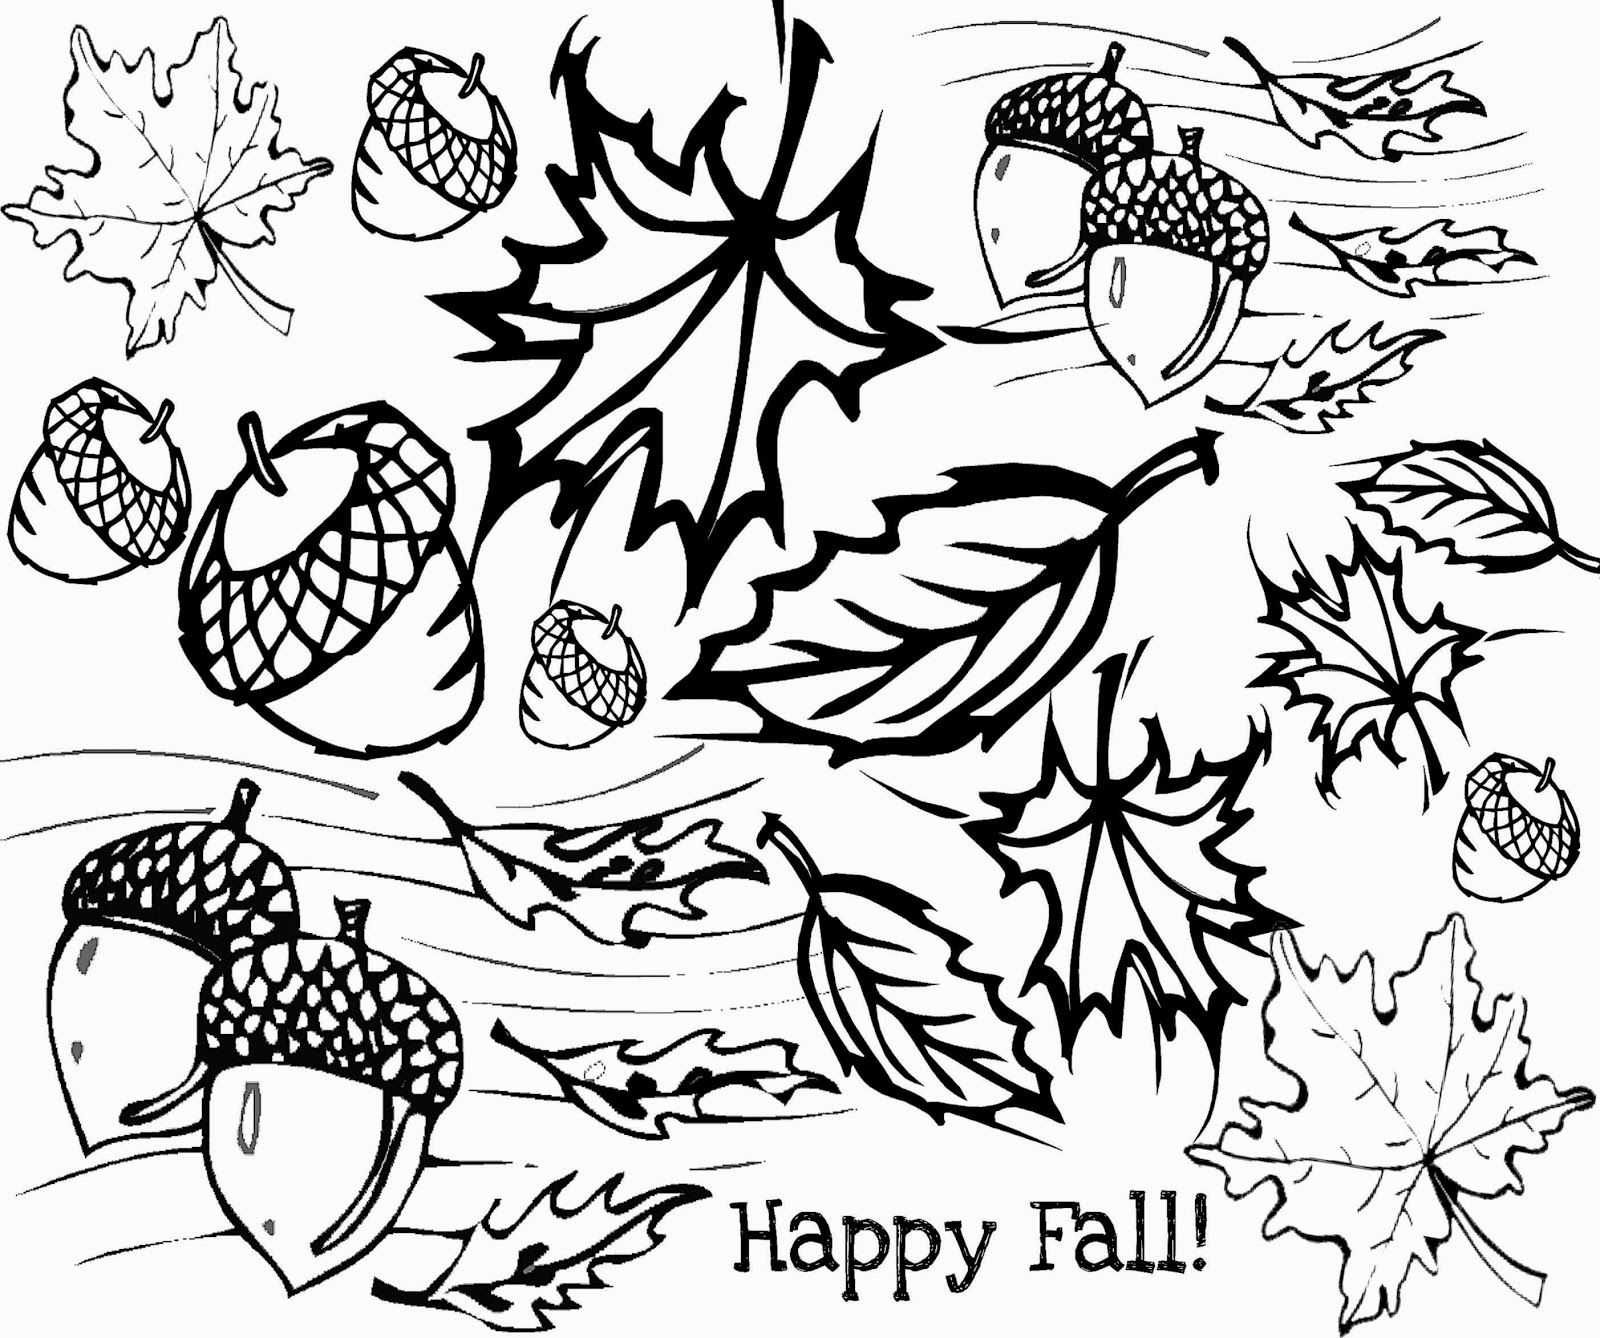 Adult Beauty Printable Autumn Coloring Pages Images top 12 fall coloring pages for adults tree wreath page to print free sheet gallery images